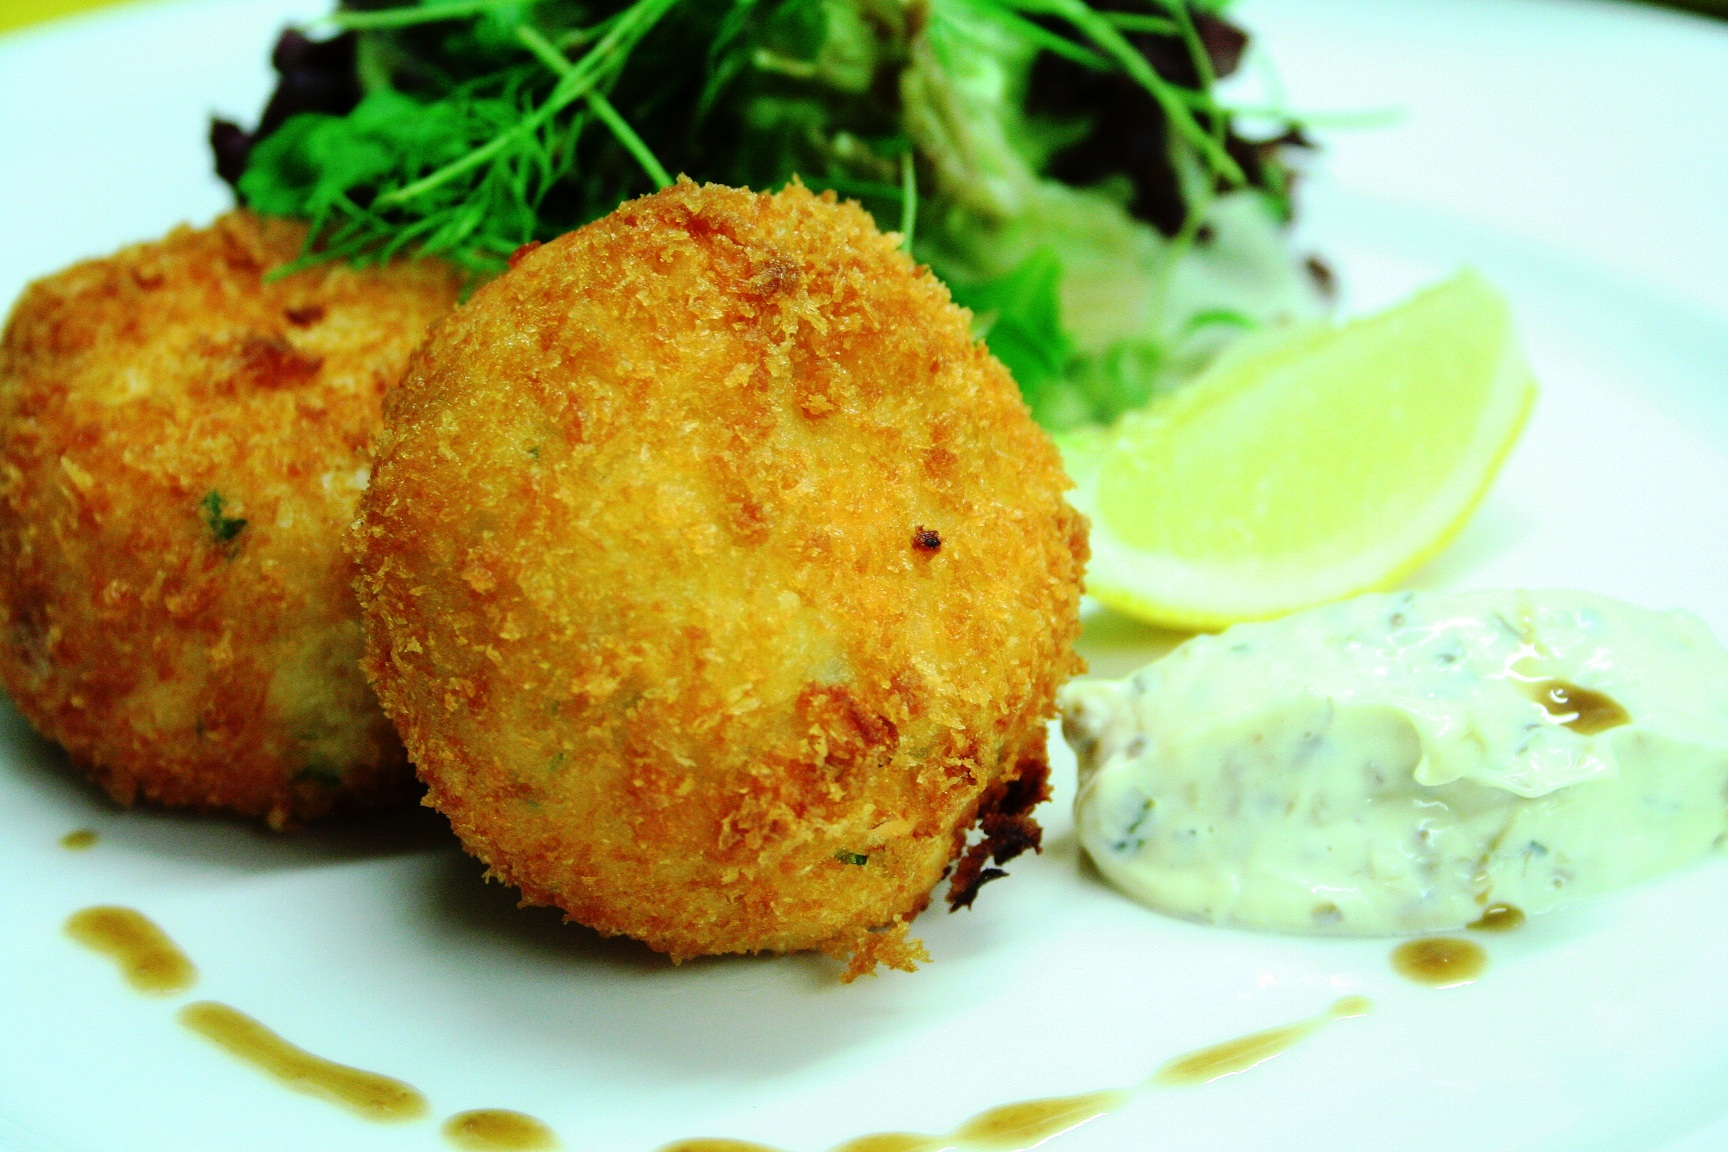 Adding some final cake ideas and designs for Salmon fish cakes